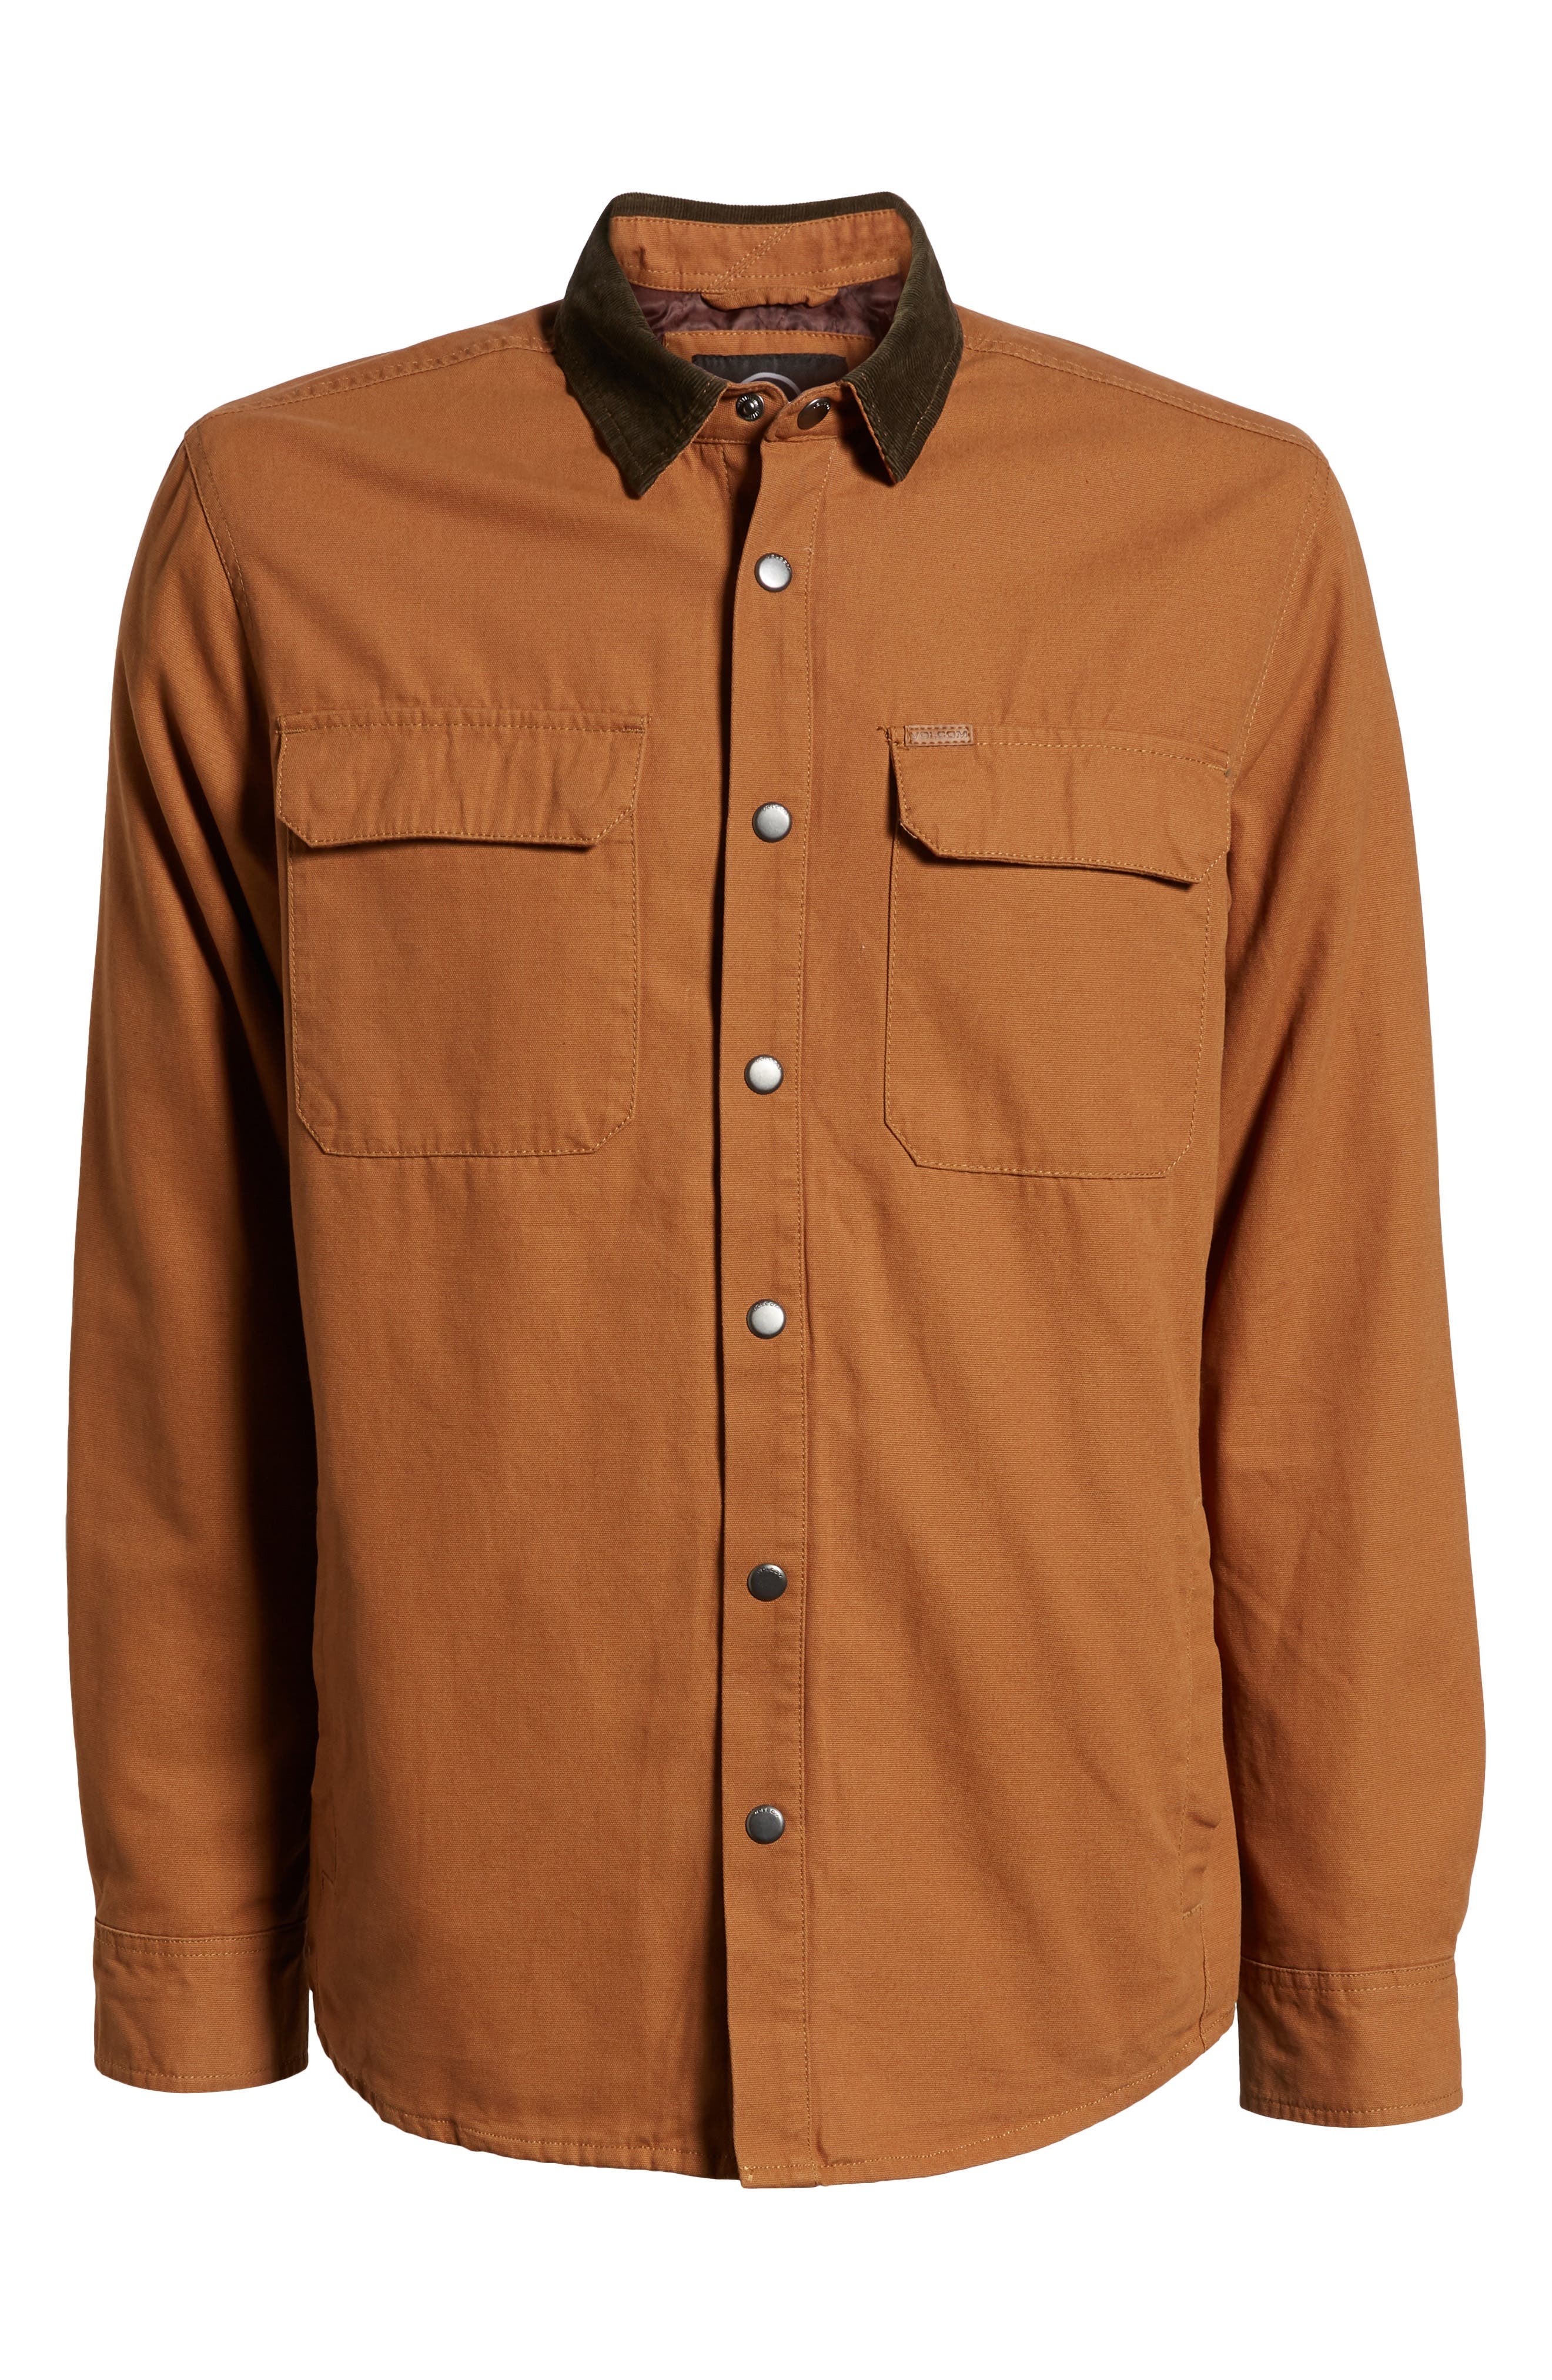 Larkin Classic Fit Jacket,                             Alternate thumbnail 5, color,                             CAMEL